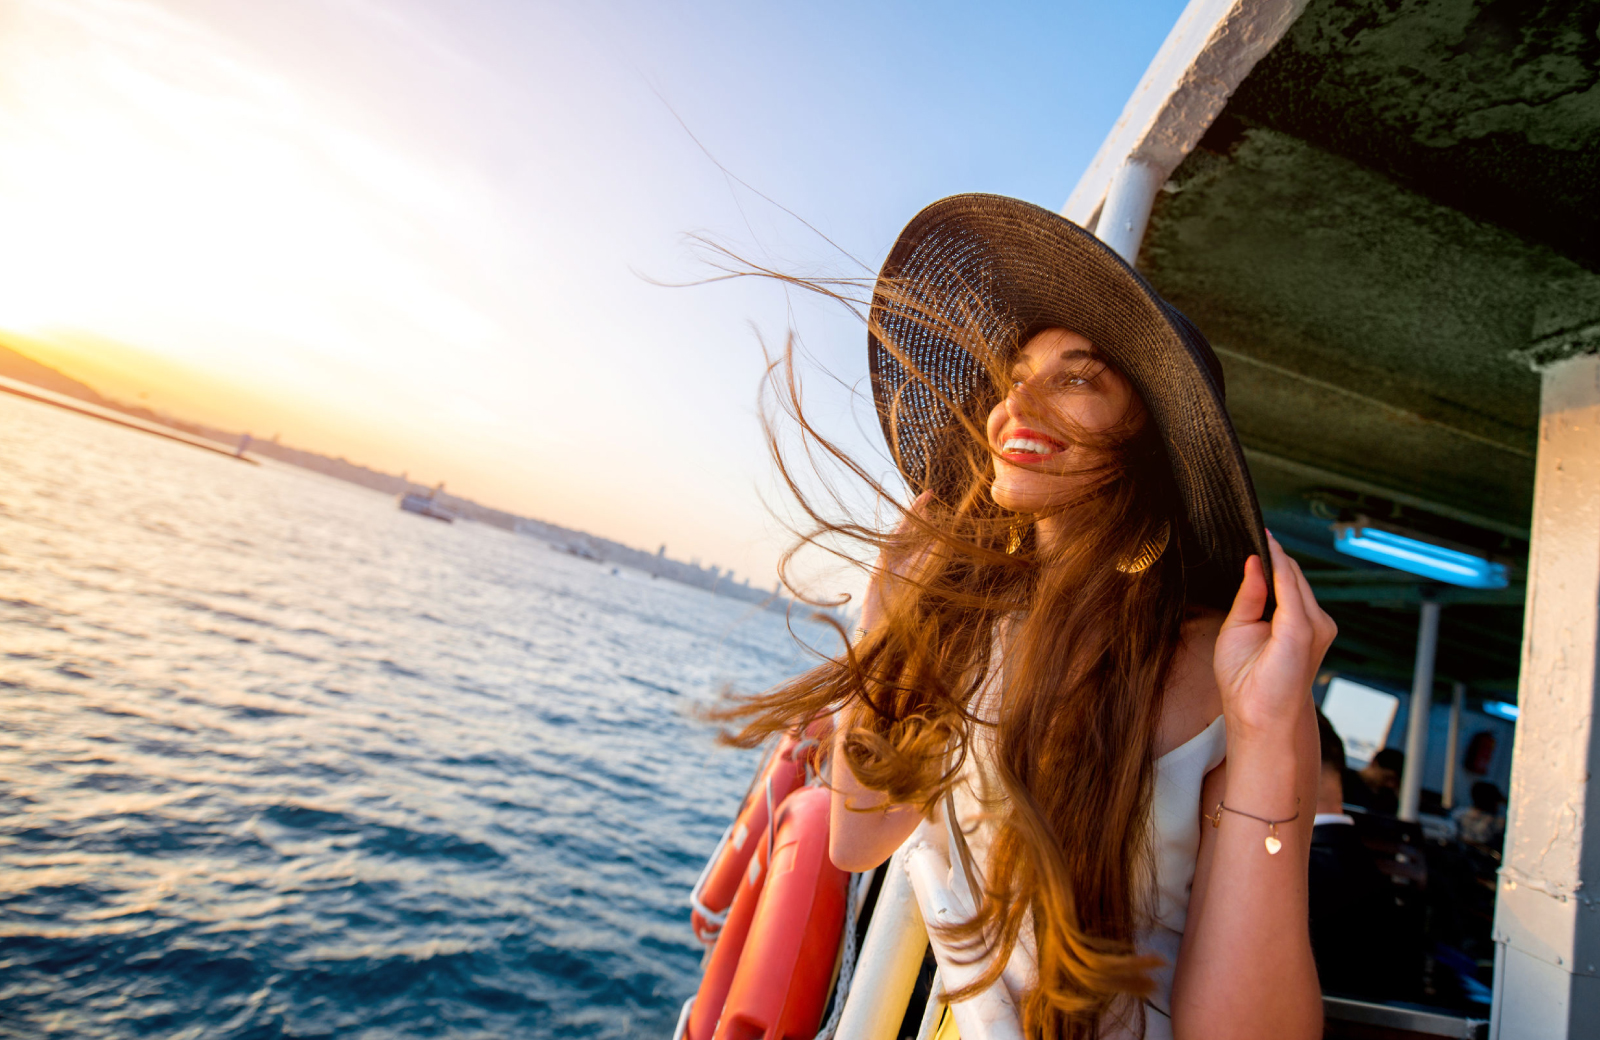 smiling woman with long hair and a large sunhat riding on Sheffield Island Ferry - The Waypointe Apts